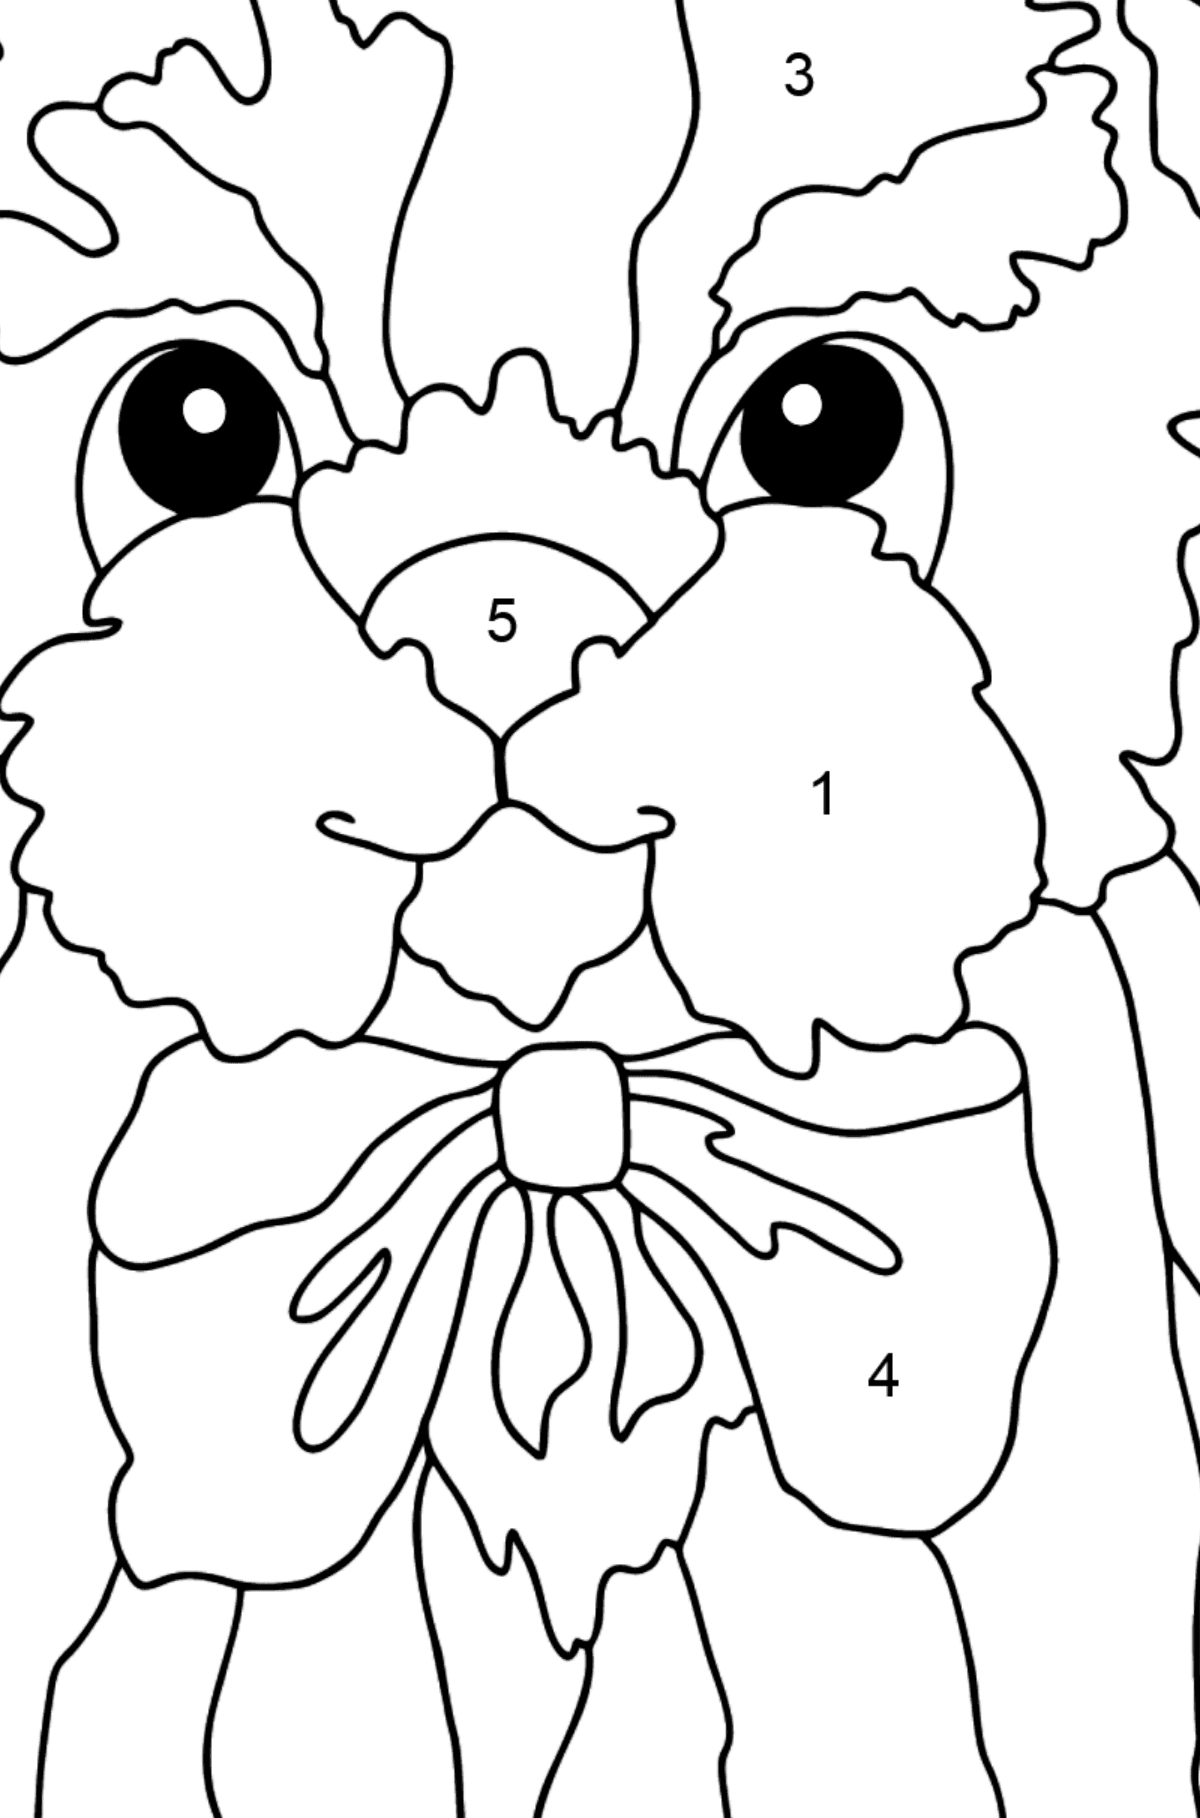 Coloring Page - A Young Fluffy Dog - Coloring by Numbers for Kids